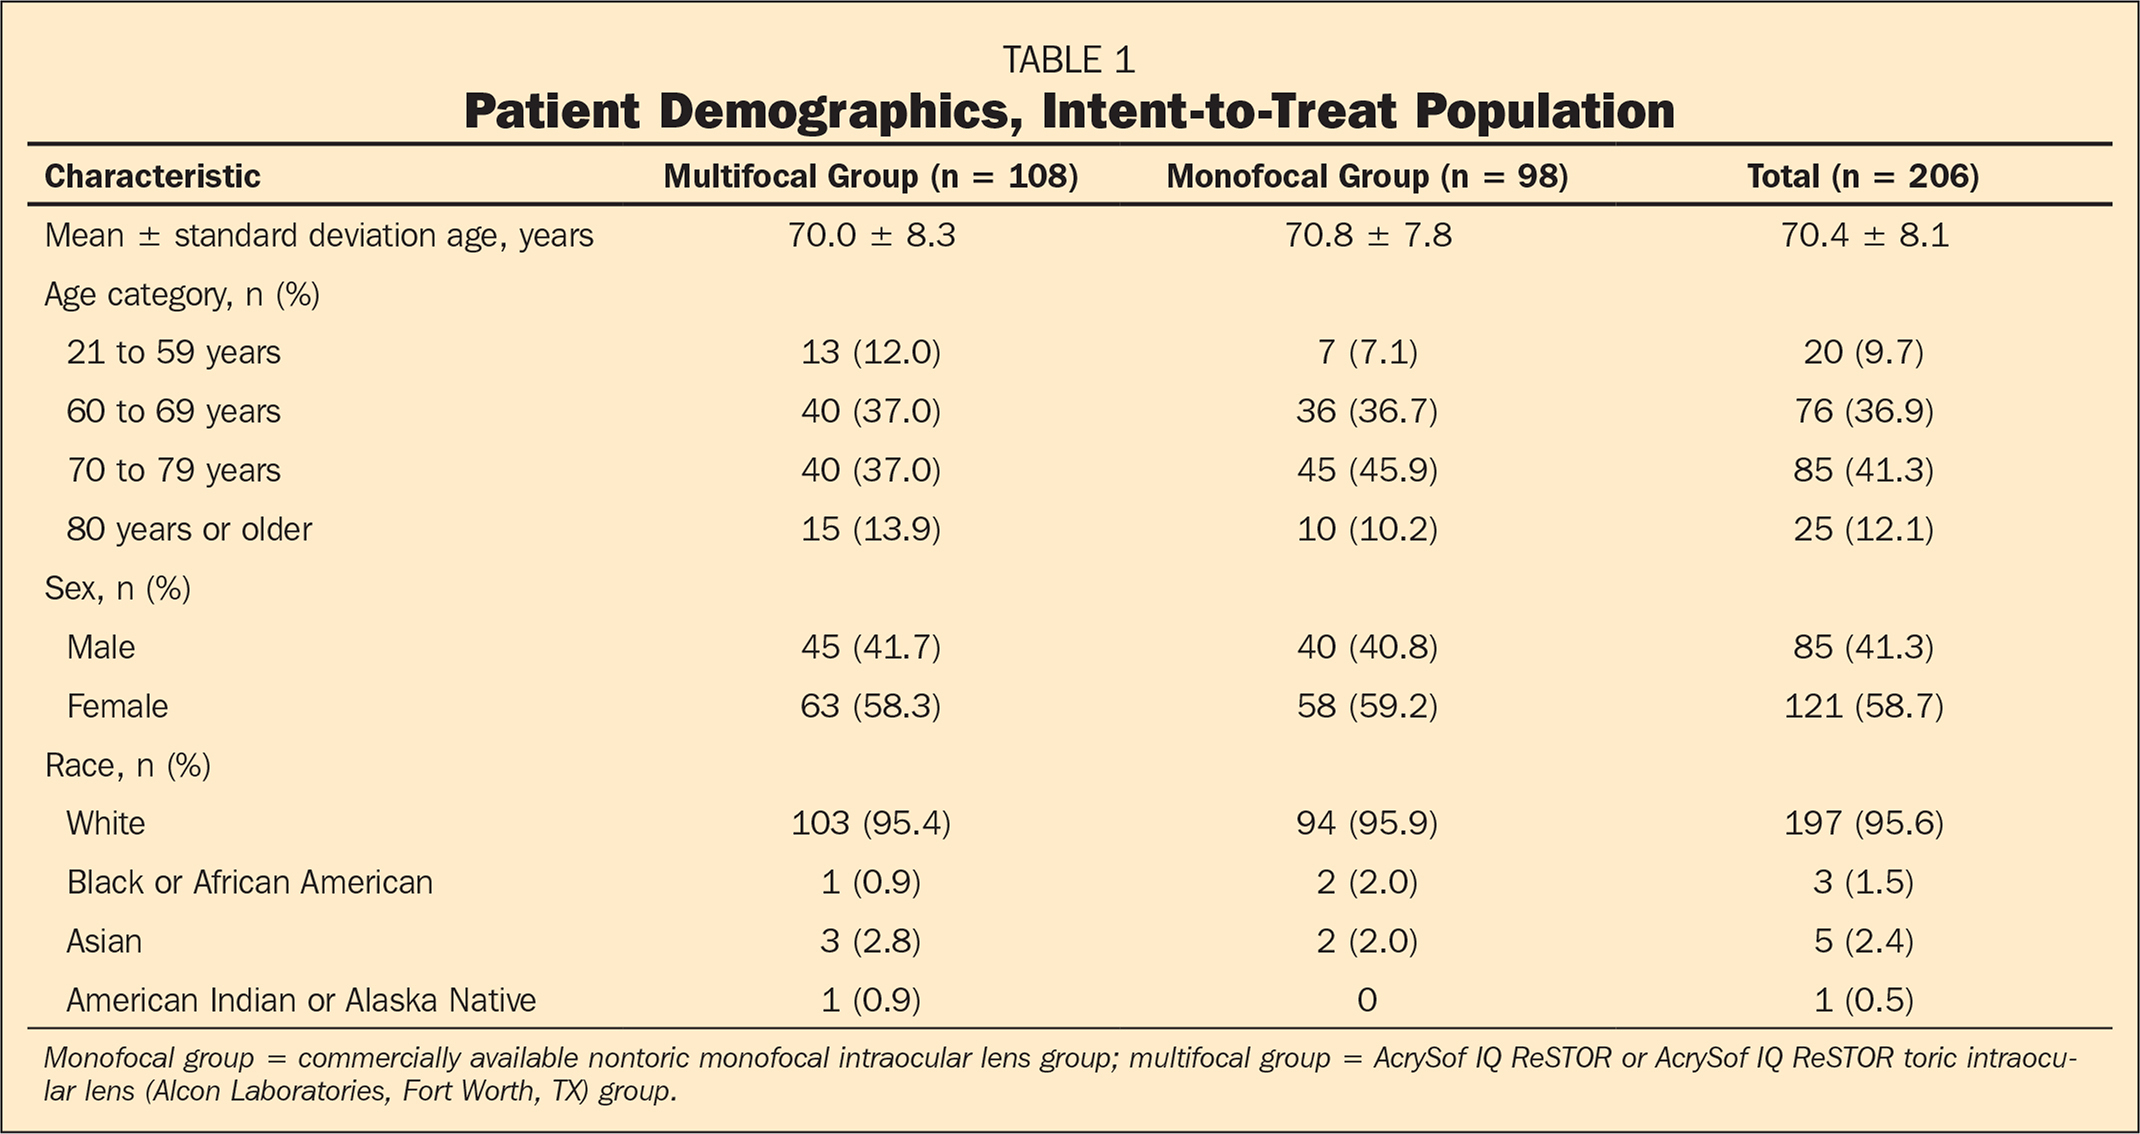 Patient Demographics, Intent-to-Treat Population